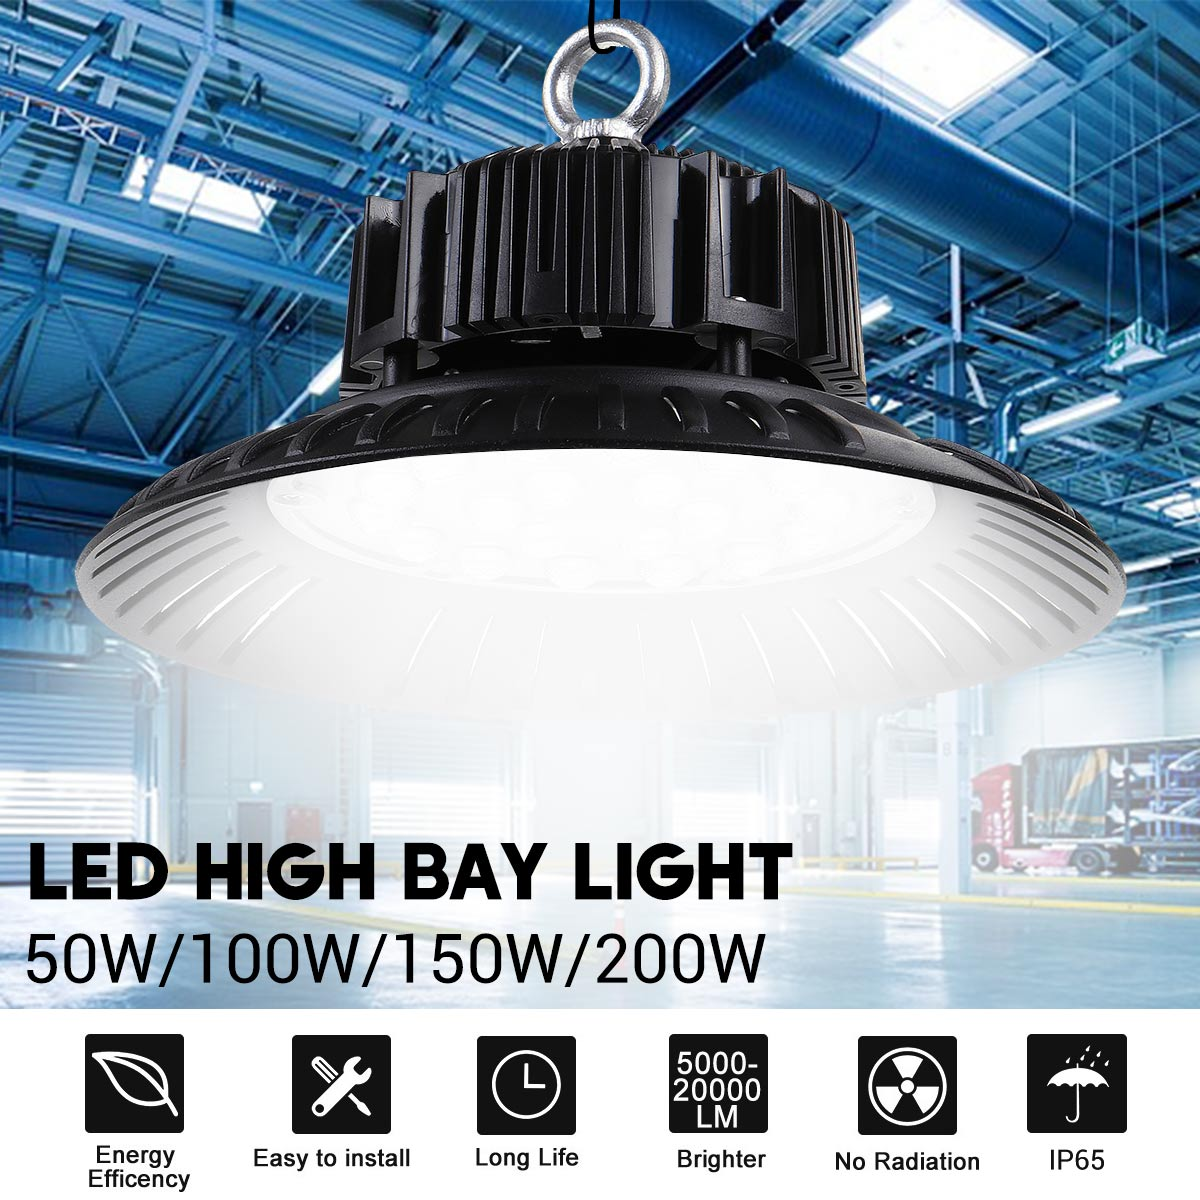 Led High Bay Light Waterproof IP65 Warehouse Workshop Garage Industrial Lamp Stadium Market Airport LED Garage Light